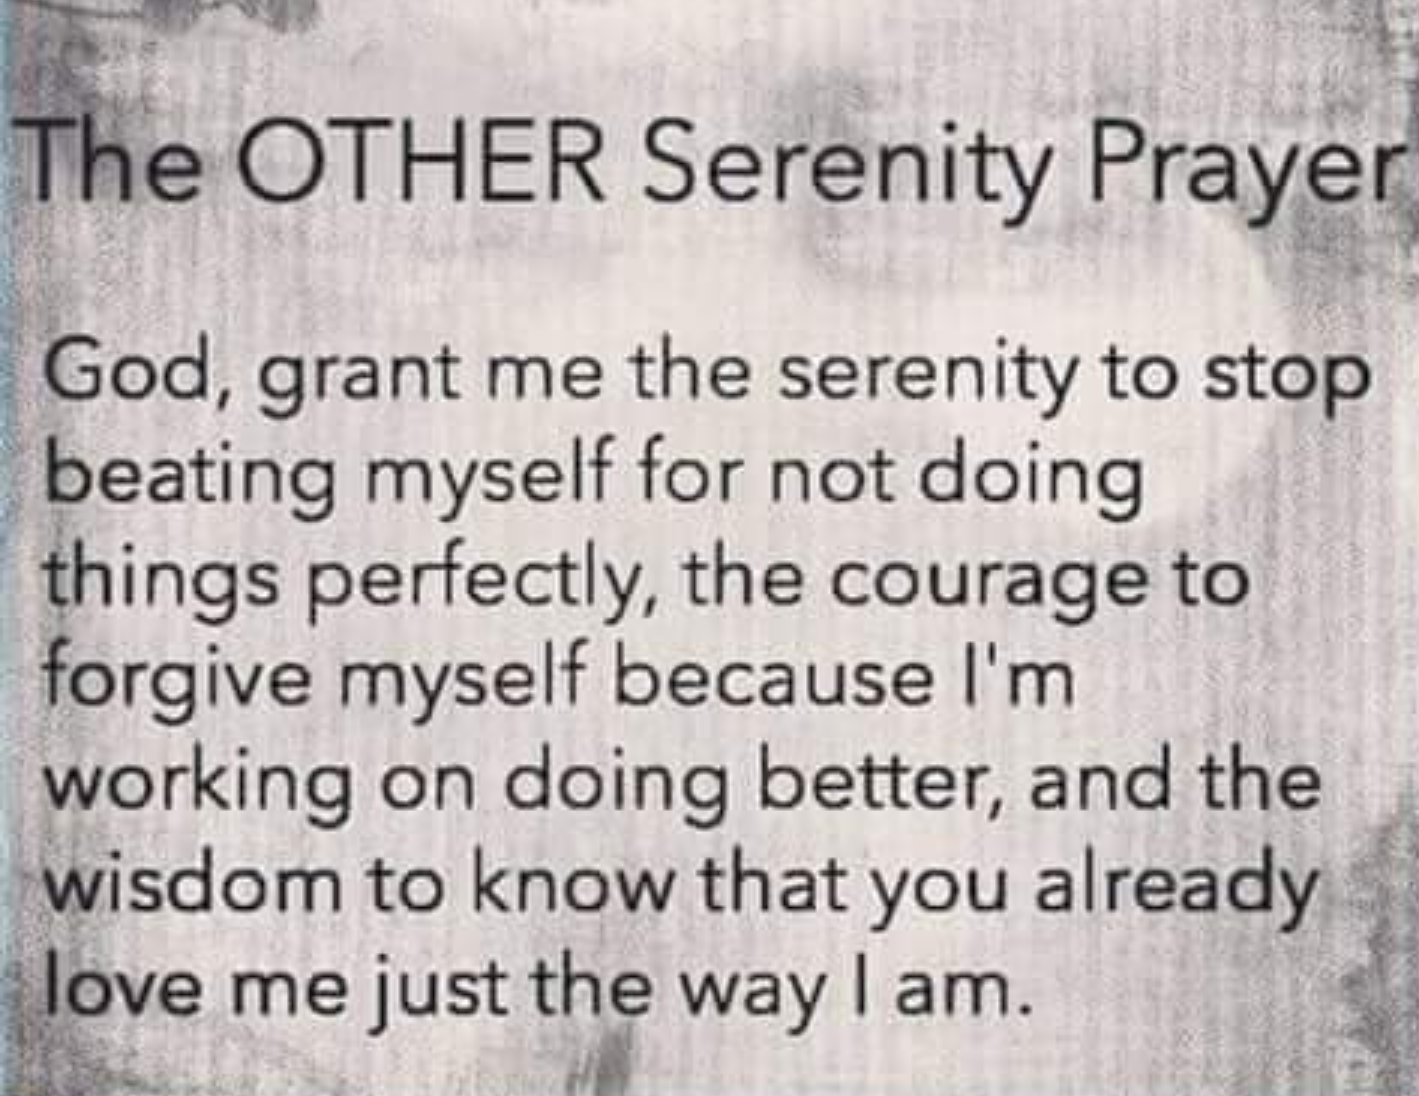 photo about Serenity Prayer Printable named The Other Serenity Prayer Enthusiasm AND Psychological